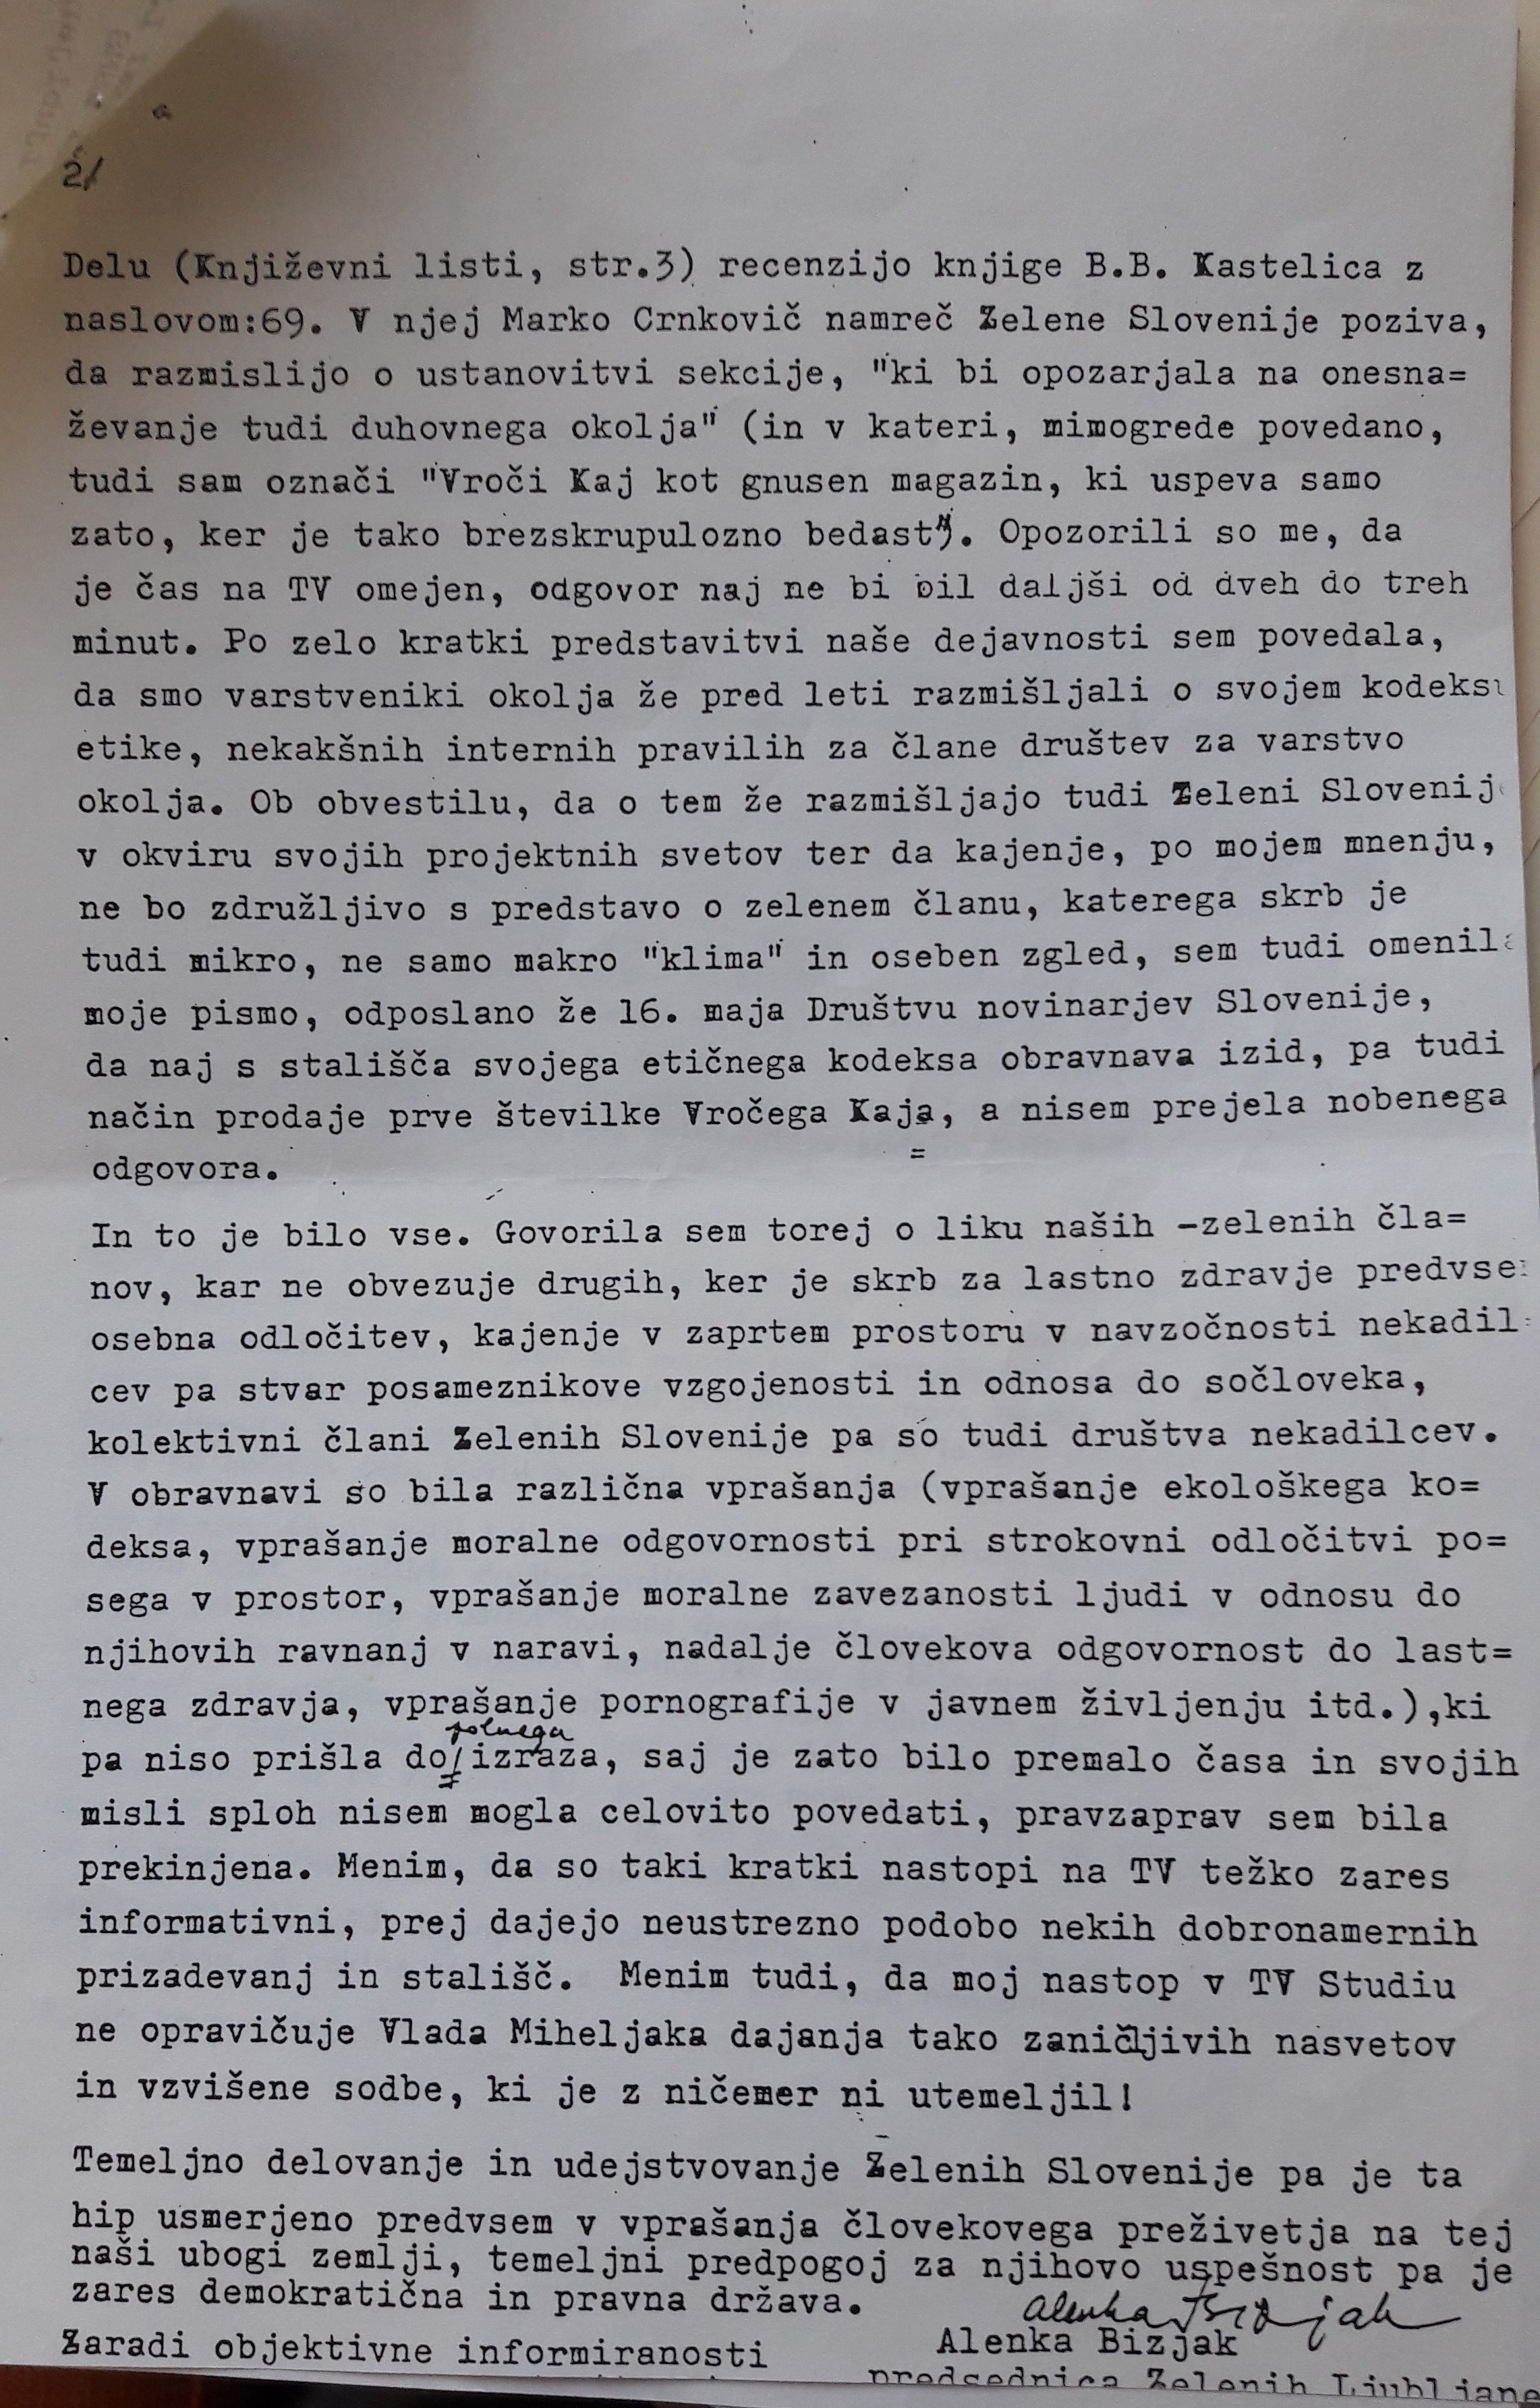 Letter from Alenka Bizjak to the editorial board of Mladina magazine. 11 November 1989.